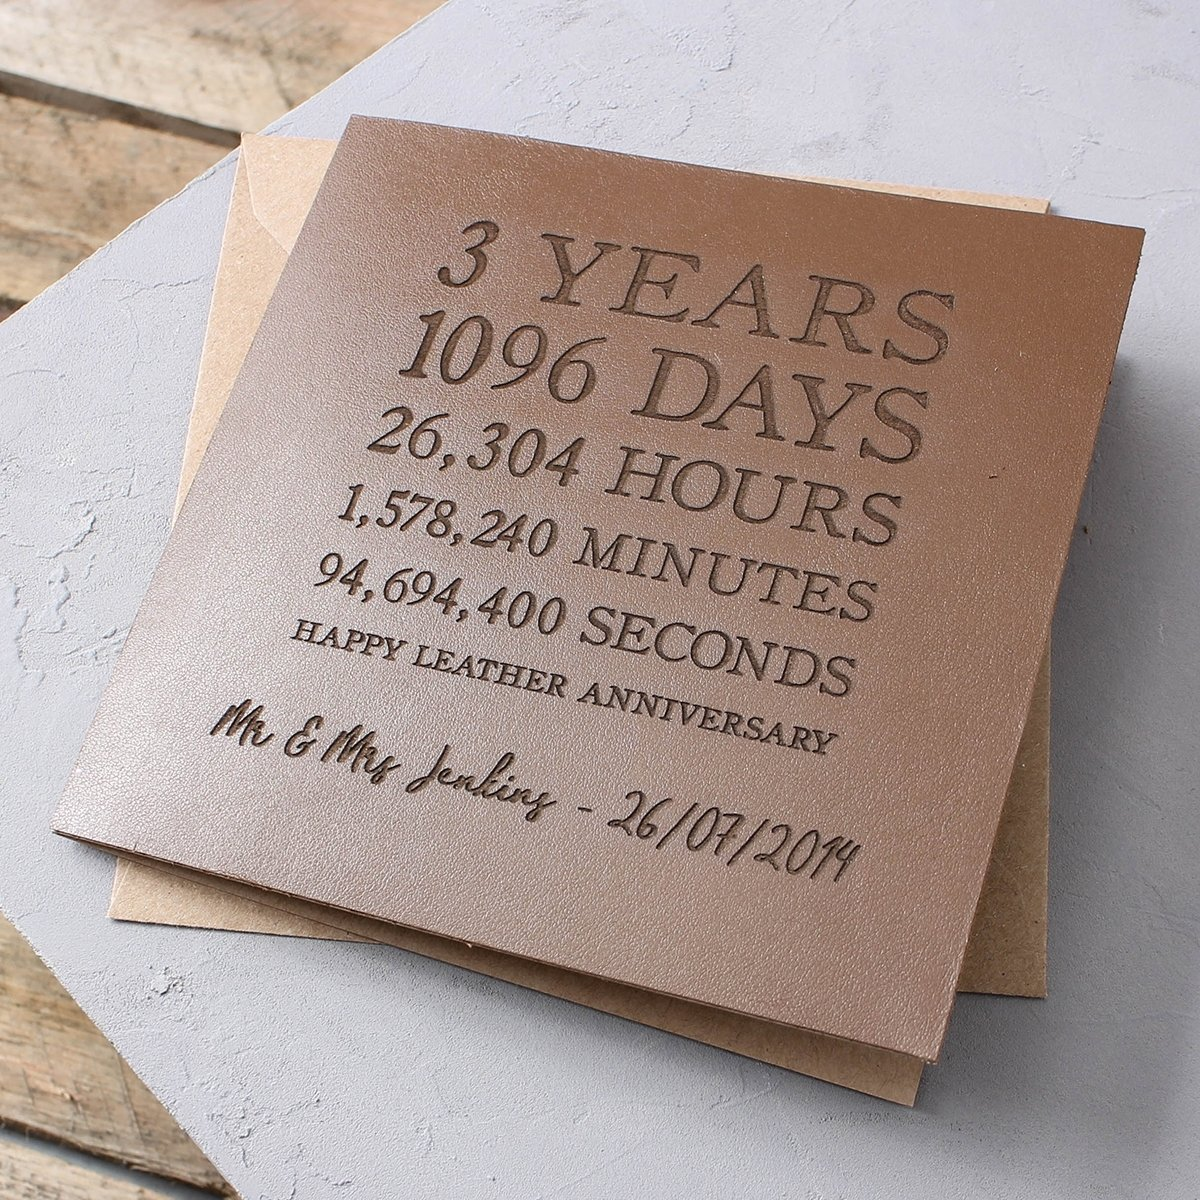 10 Great 3Rd Year Anniversary Gift Ideas personalised time card leather 3rd anniversary gettingpersonal co uk 1 2020